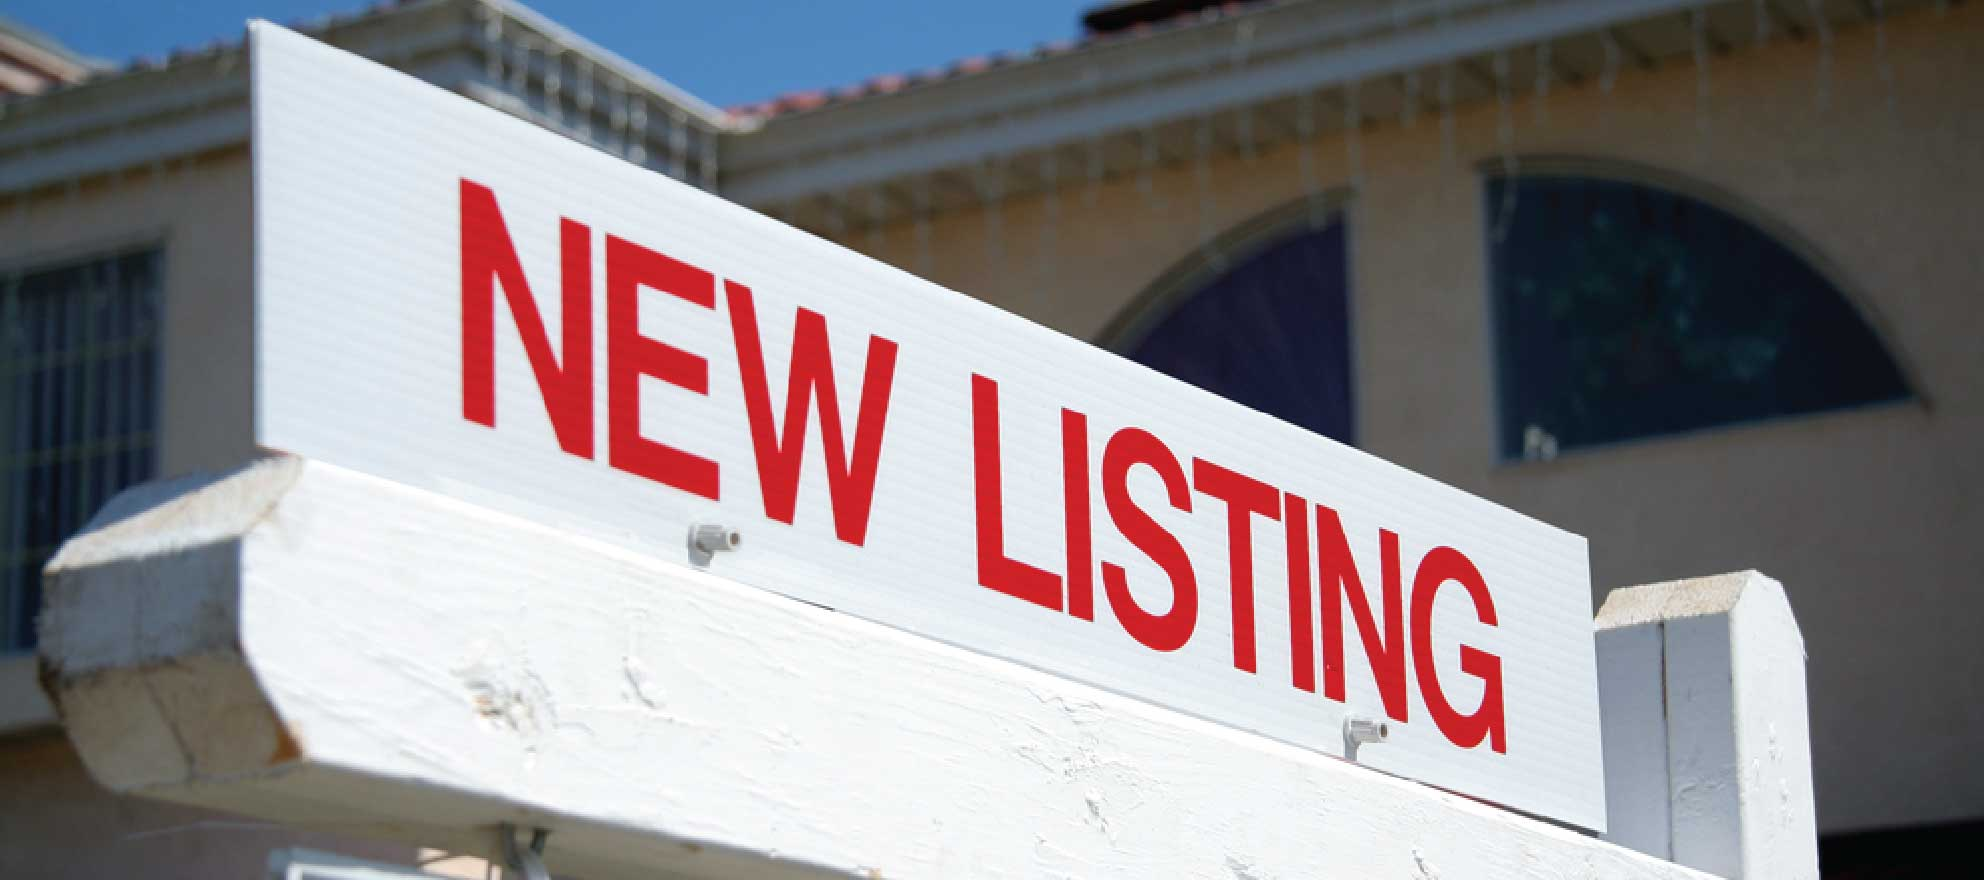 7 P's of real estate listing marketing